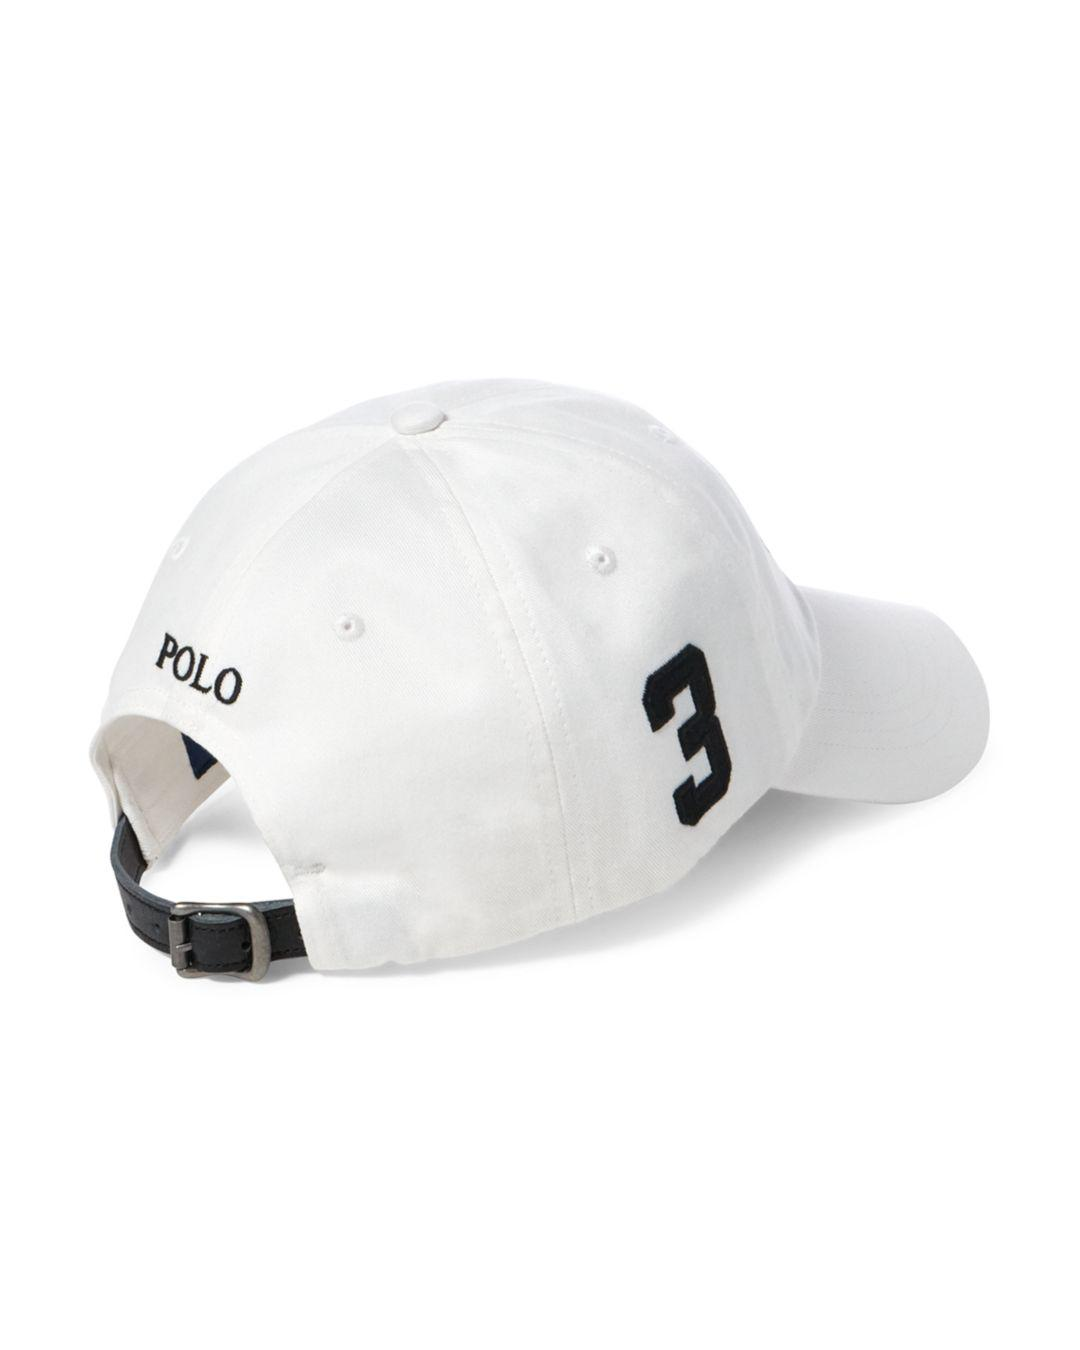 186cc1f16c3 ... Lyst - Ralph Lauren Polo Big Pony Chino Baseball Cap in White for Men  price reduced ...